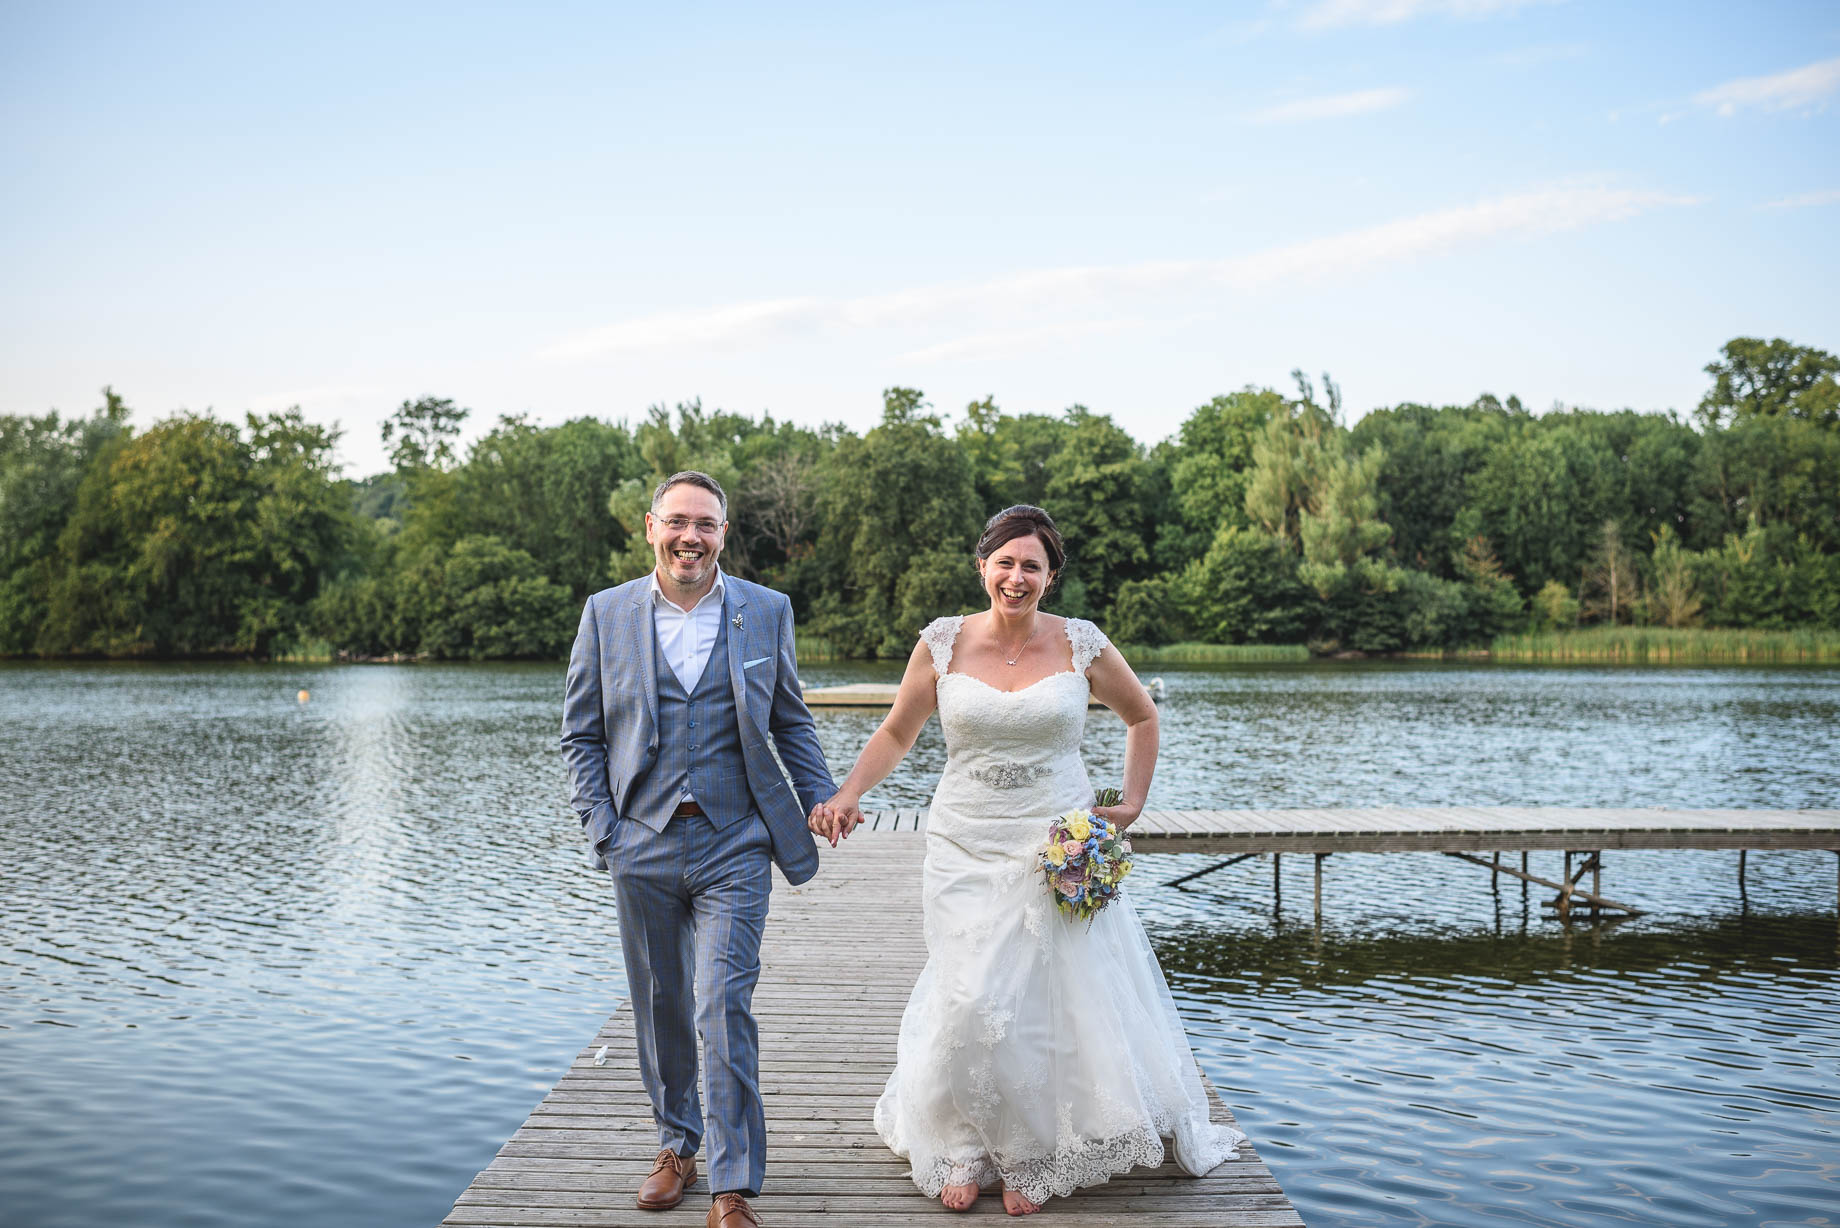 Luton Hoo wedding photography by Guy Collier Photography - Lauren and Gem (162 of 178)